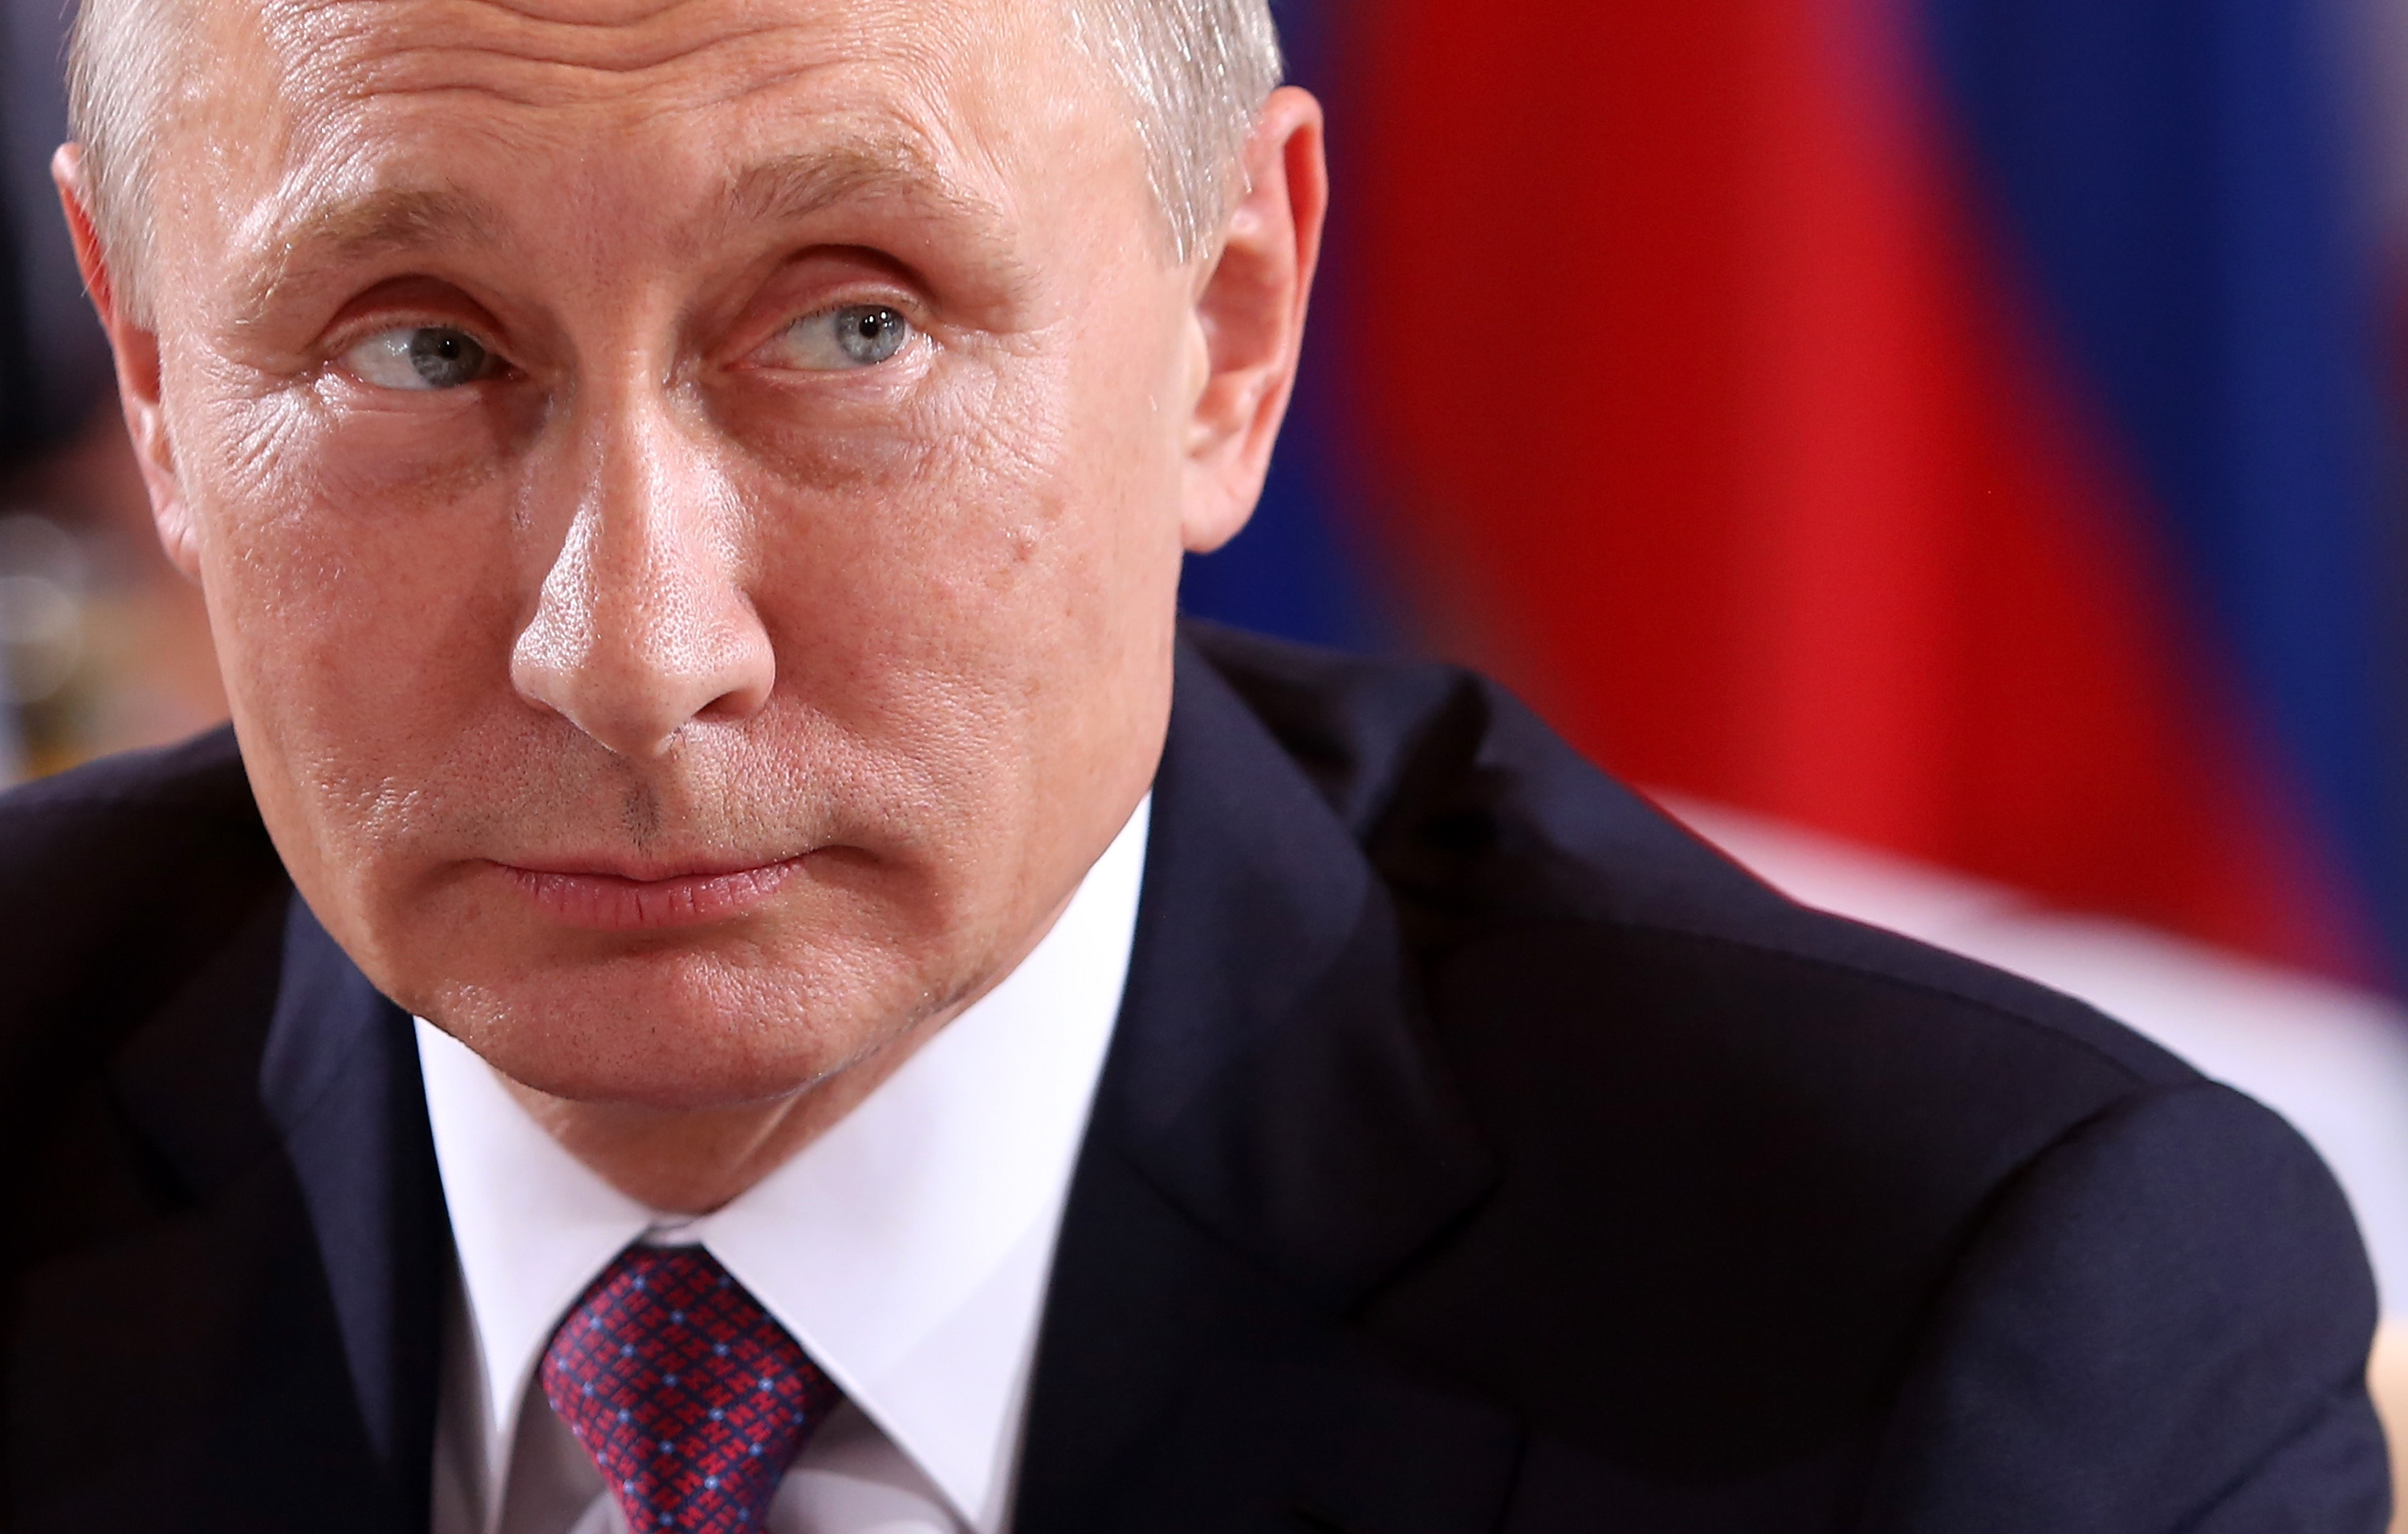 Live updates: Russian government resigns in Putin power shakeup - CNN